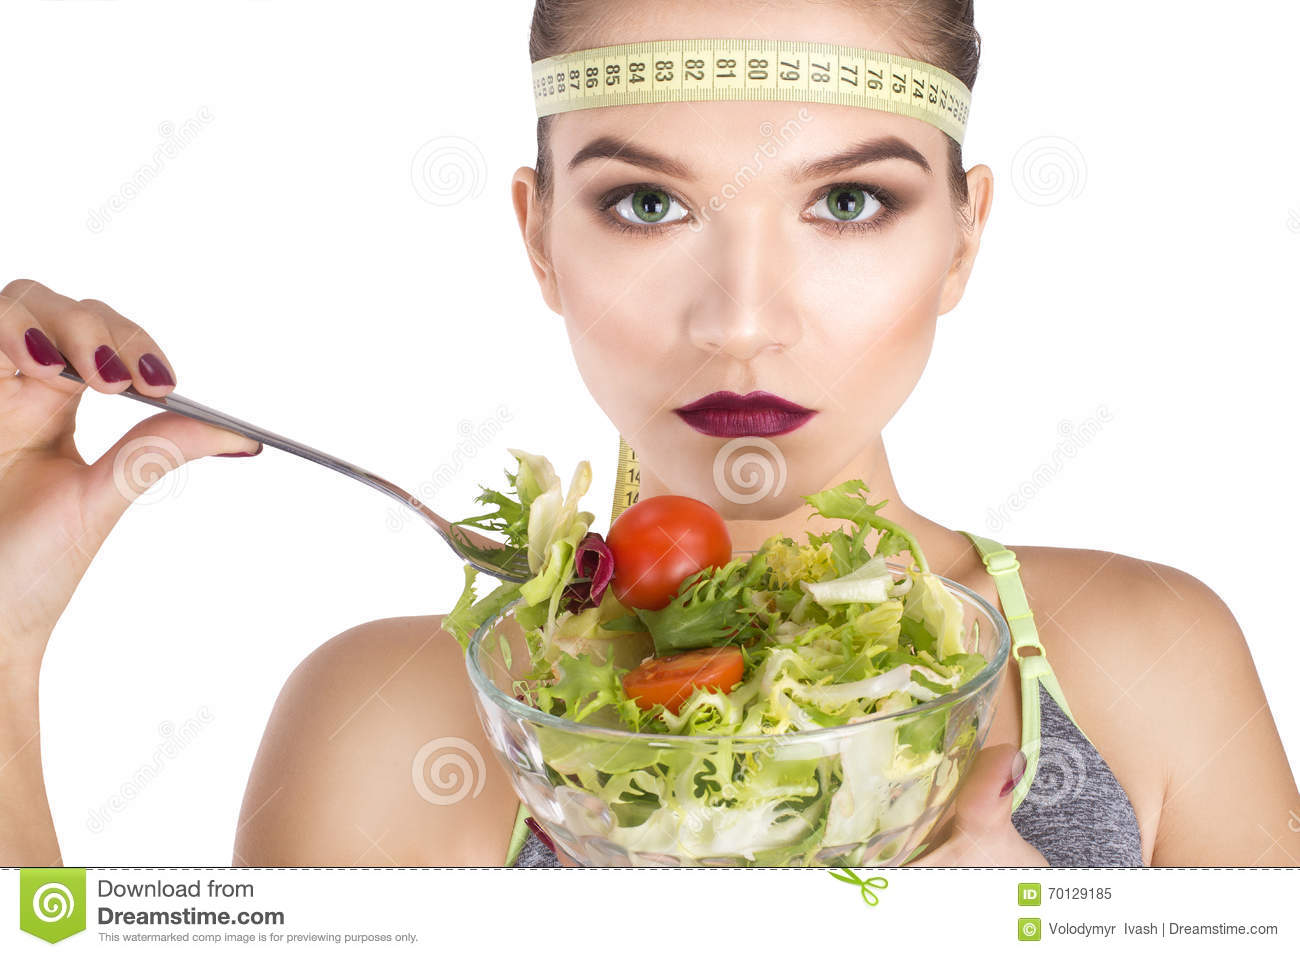 Ninja Portrait eating vegetables diet concept